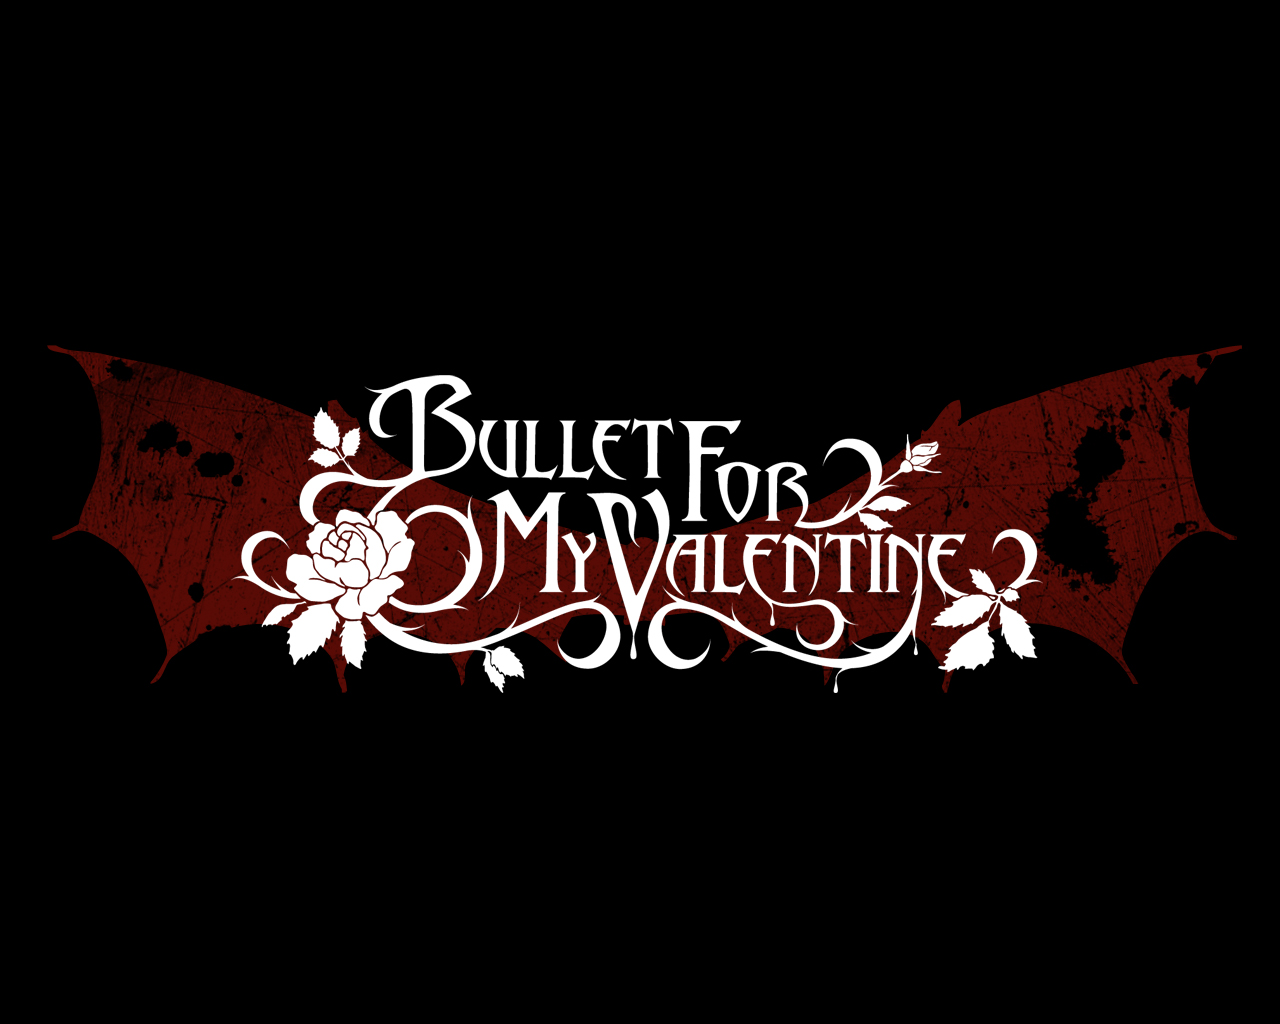 bullet for my valentine - photo #7